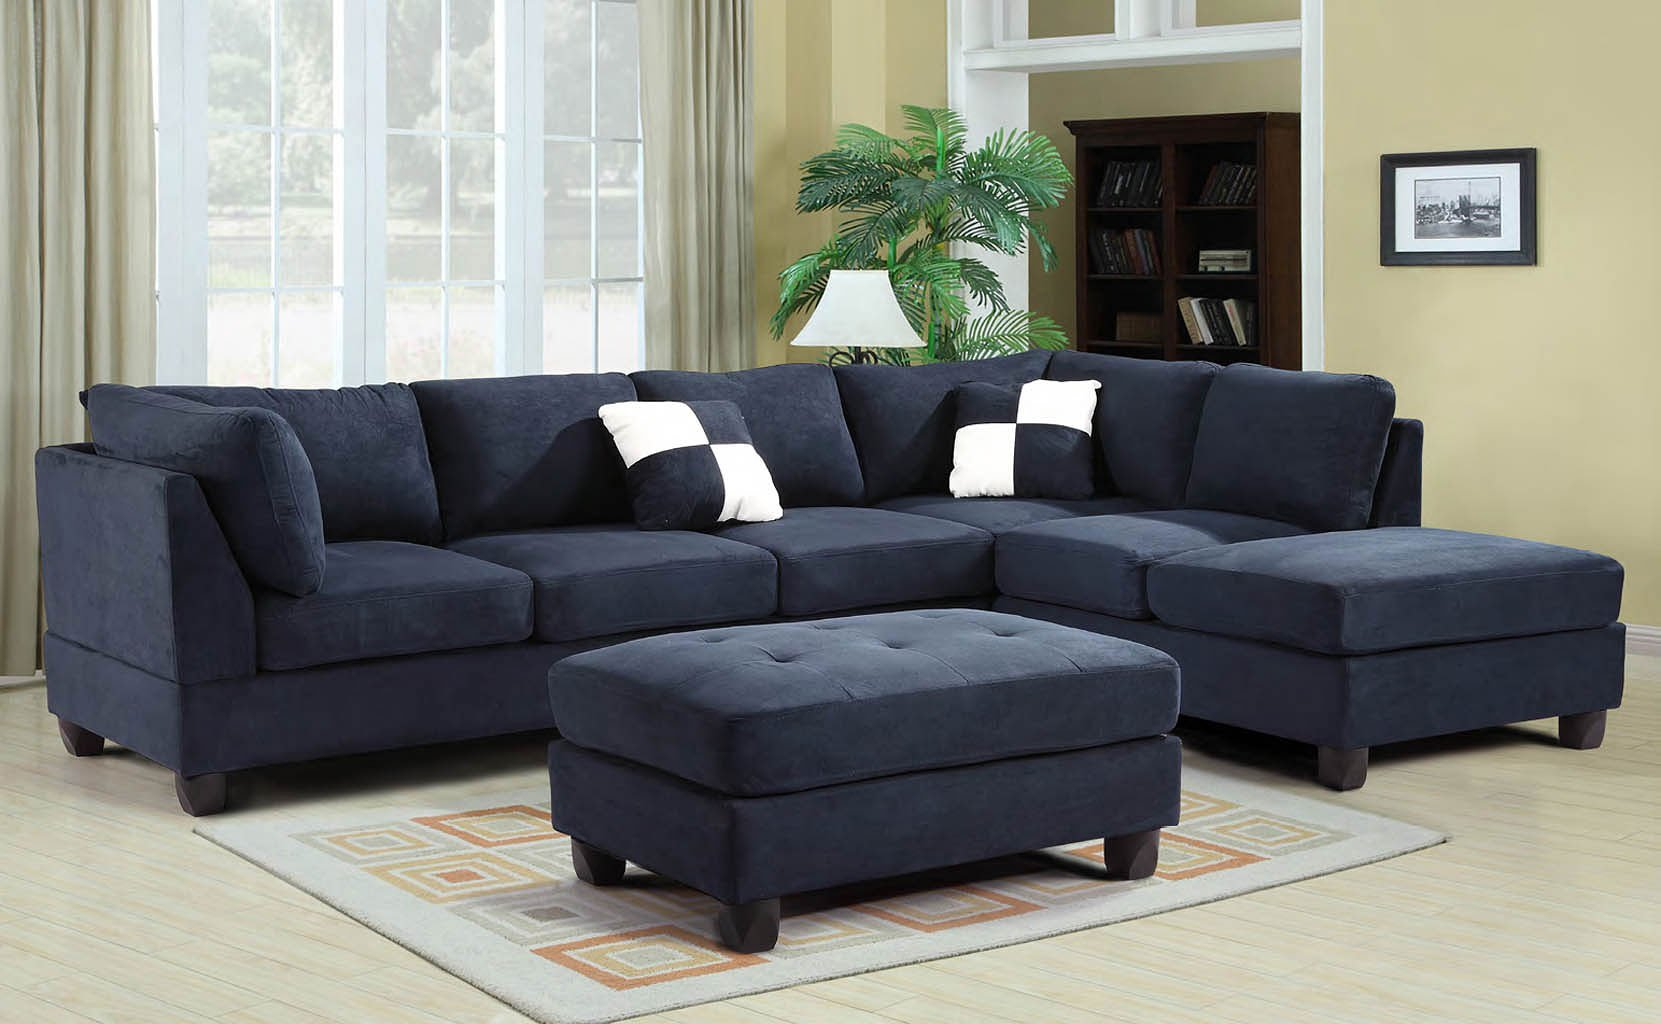 reclining sofas and loveseats sets rattan uk g630 reversible sectional set (navy blue) - living room ...